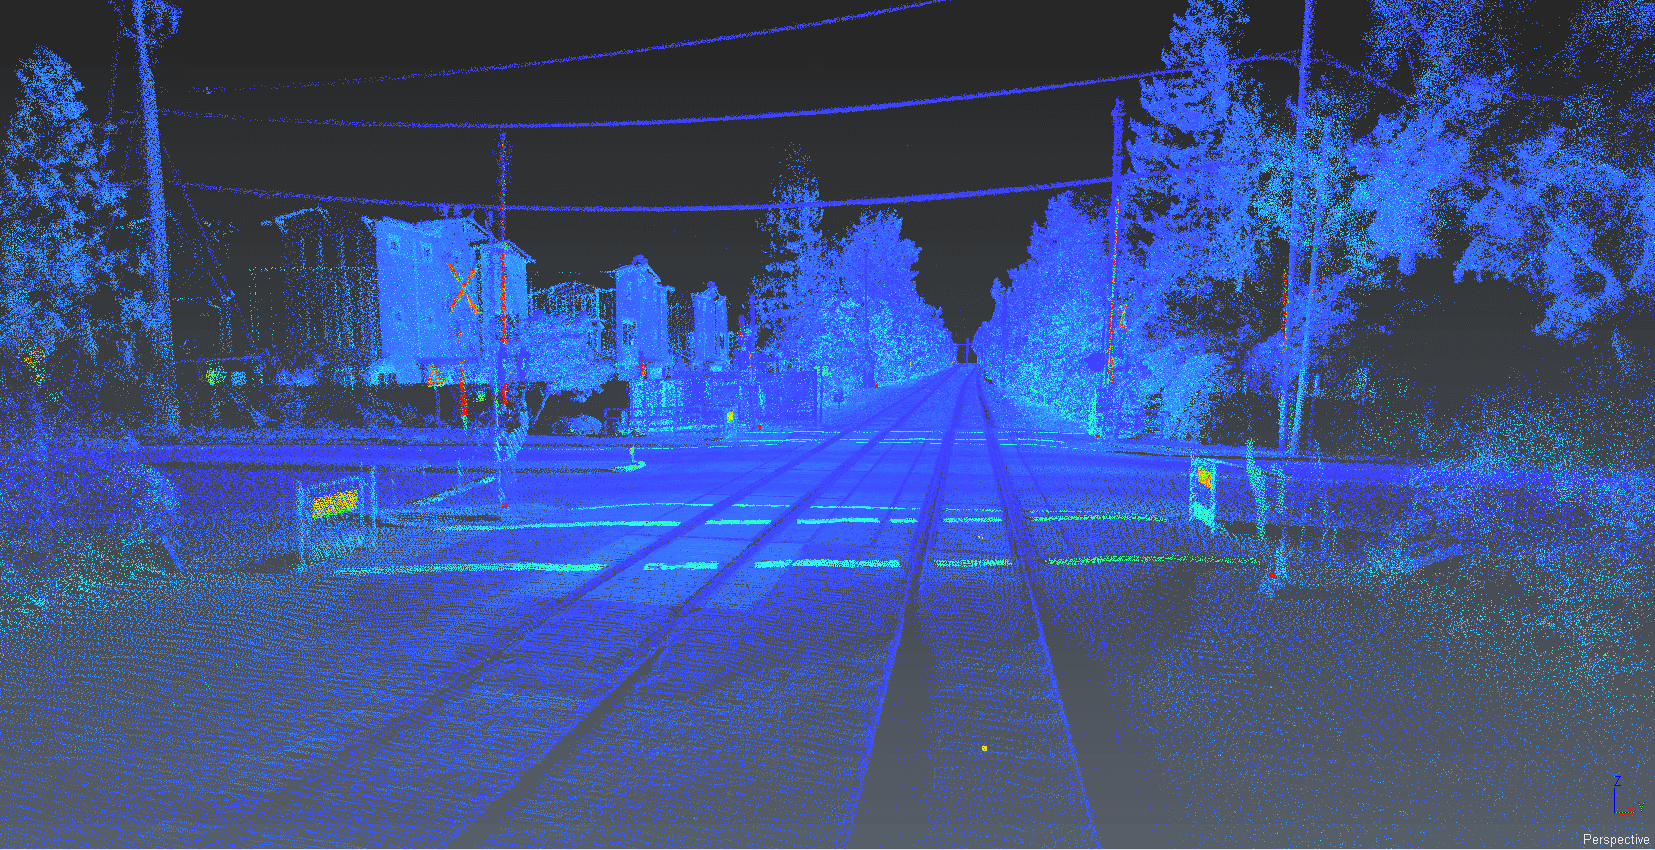 Mobile LiDAR Street Level Mapping For Railroads, Streets and Highways features extraction line, polyline, FAQ